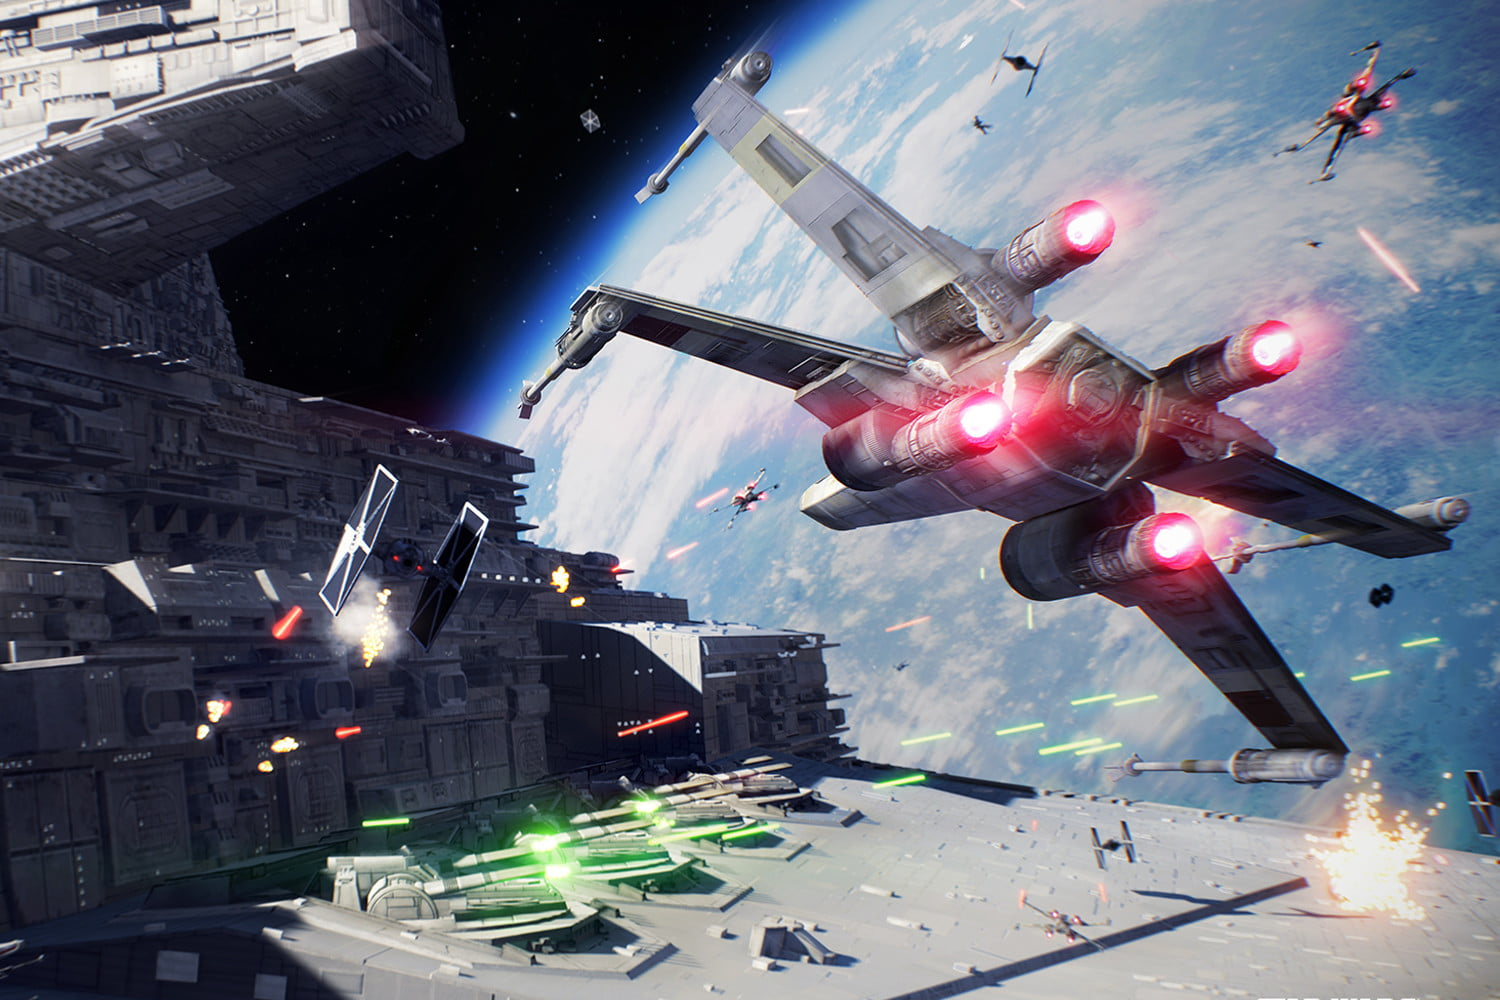 EA Earns World Record with Reddit Comment on Battlefront II